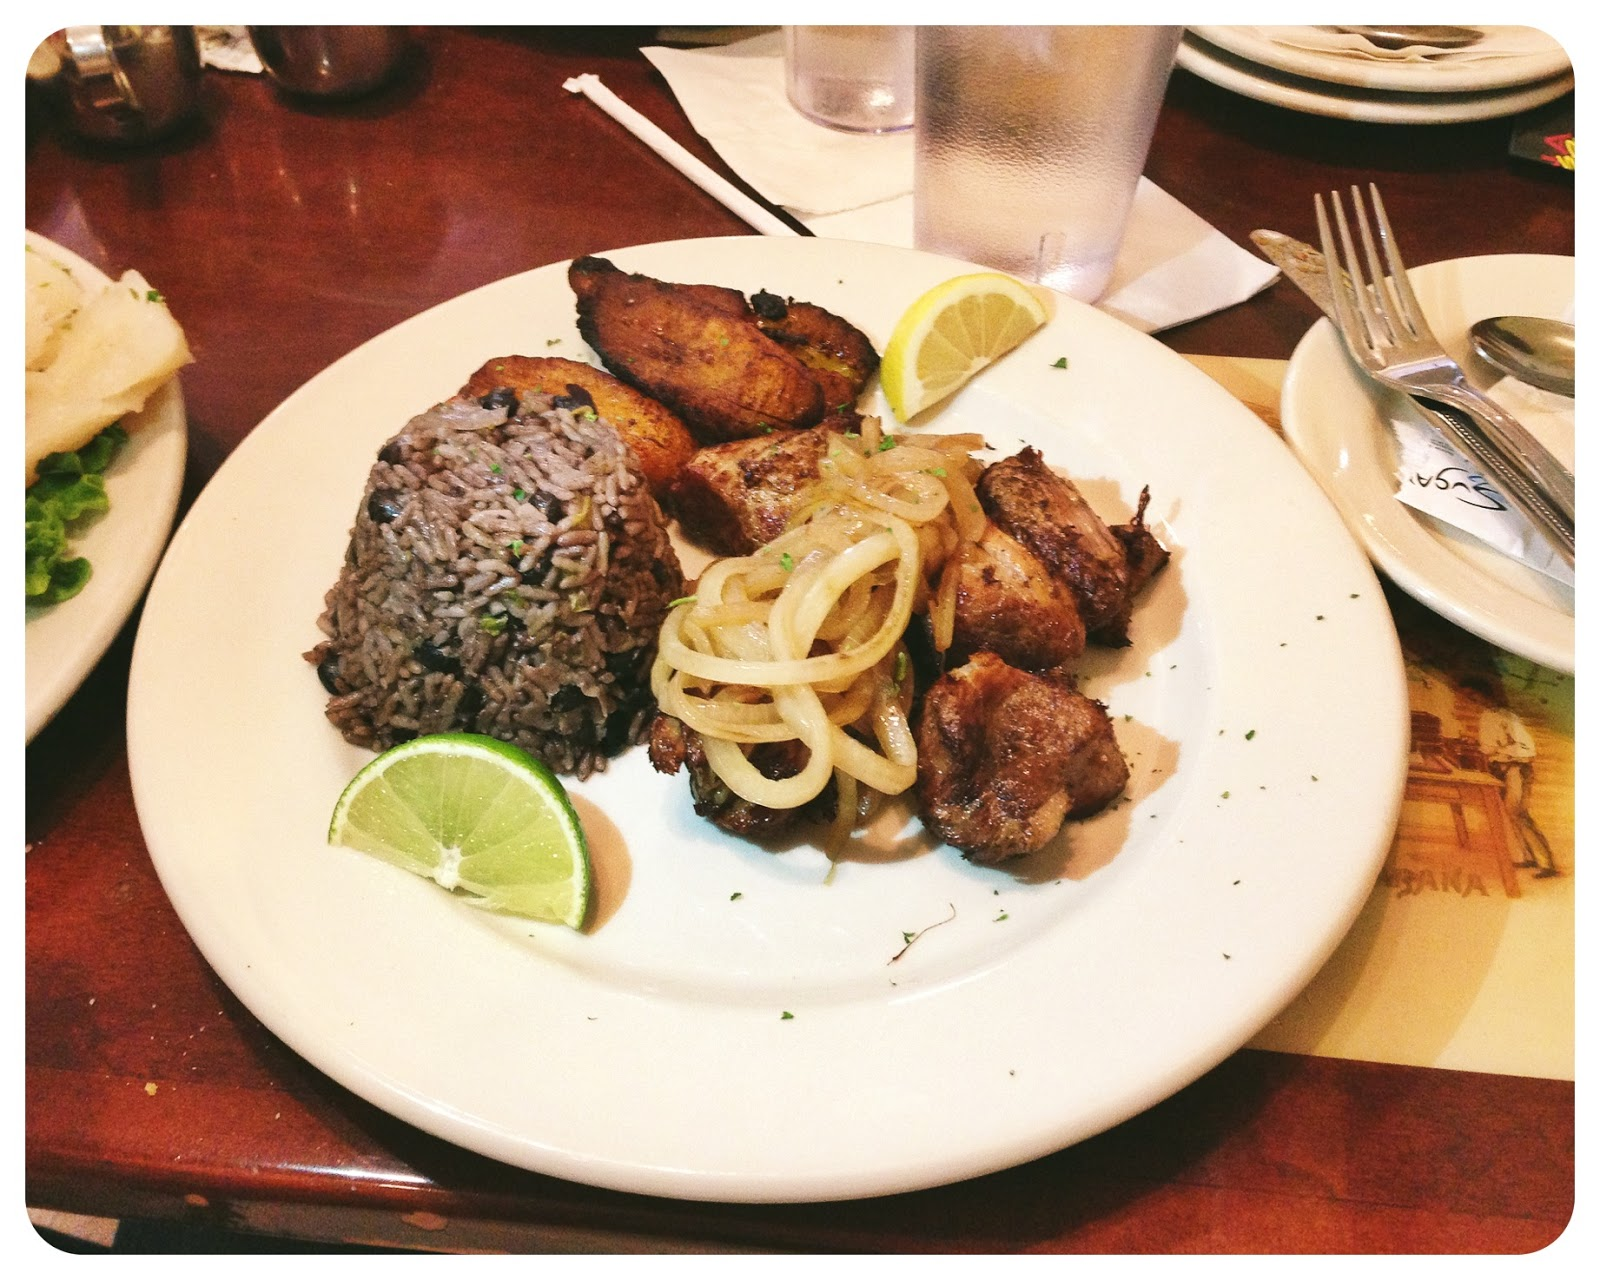 Masas De Puerco at Havana Rumba Cuban restaurant in Louisville Kentucky